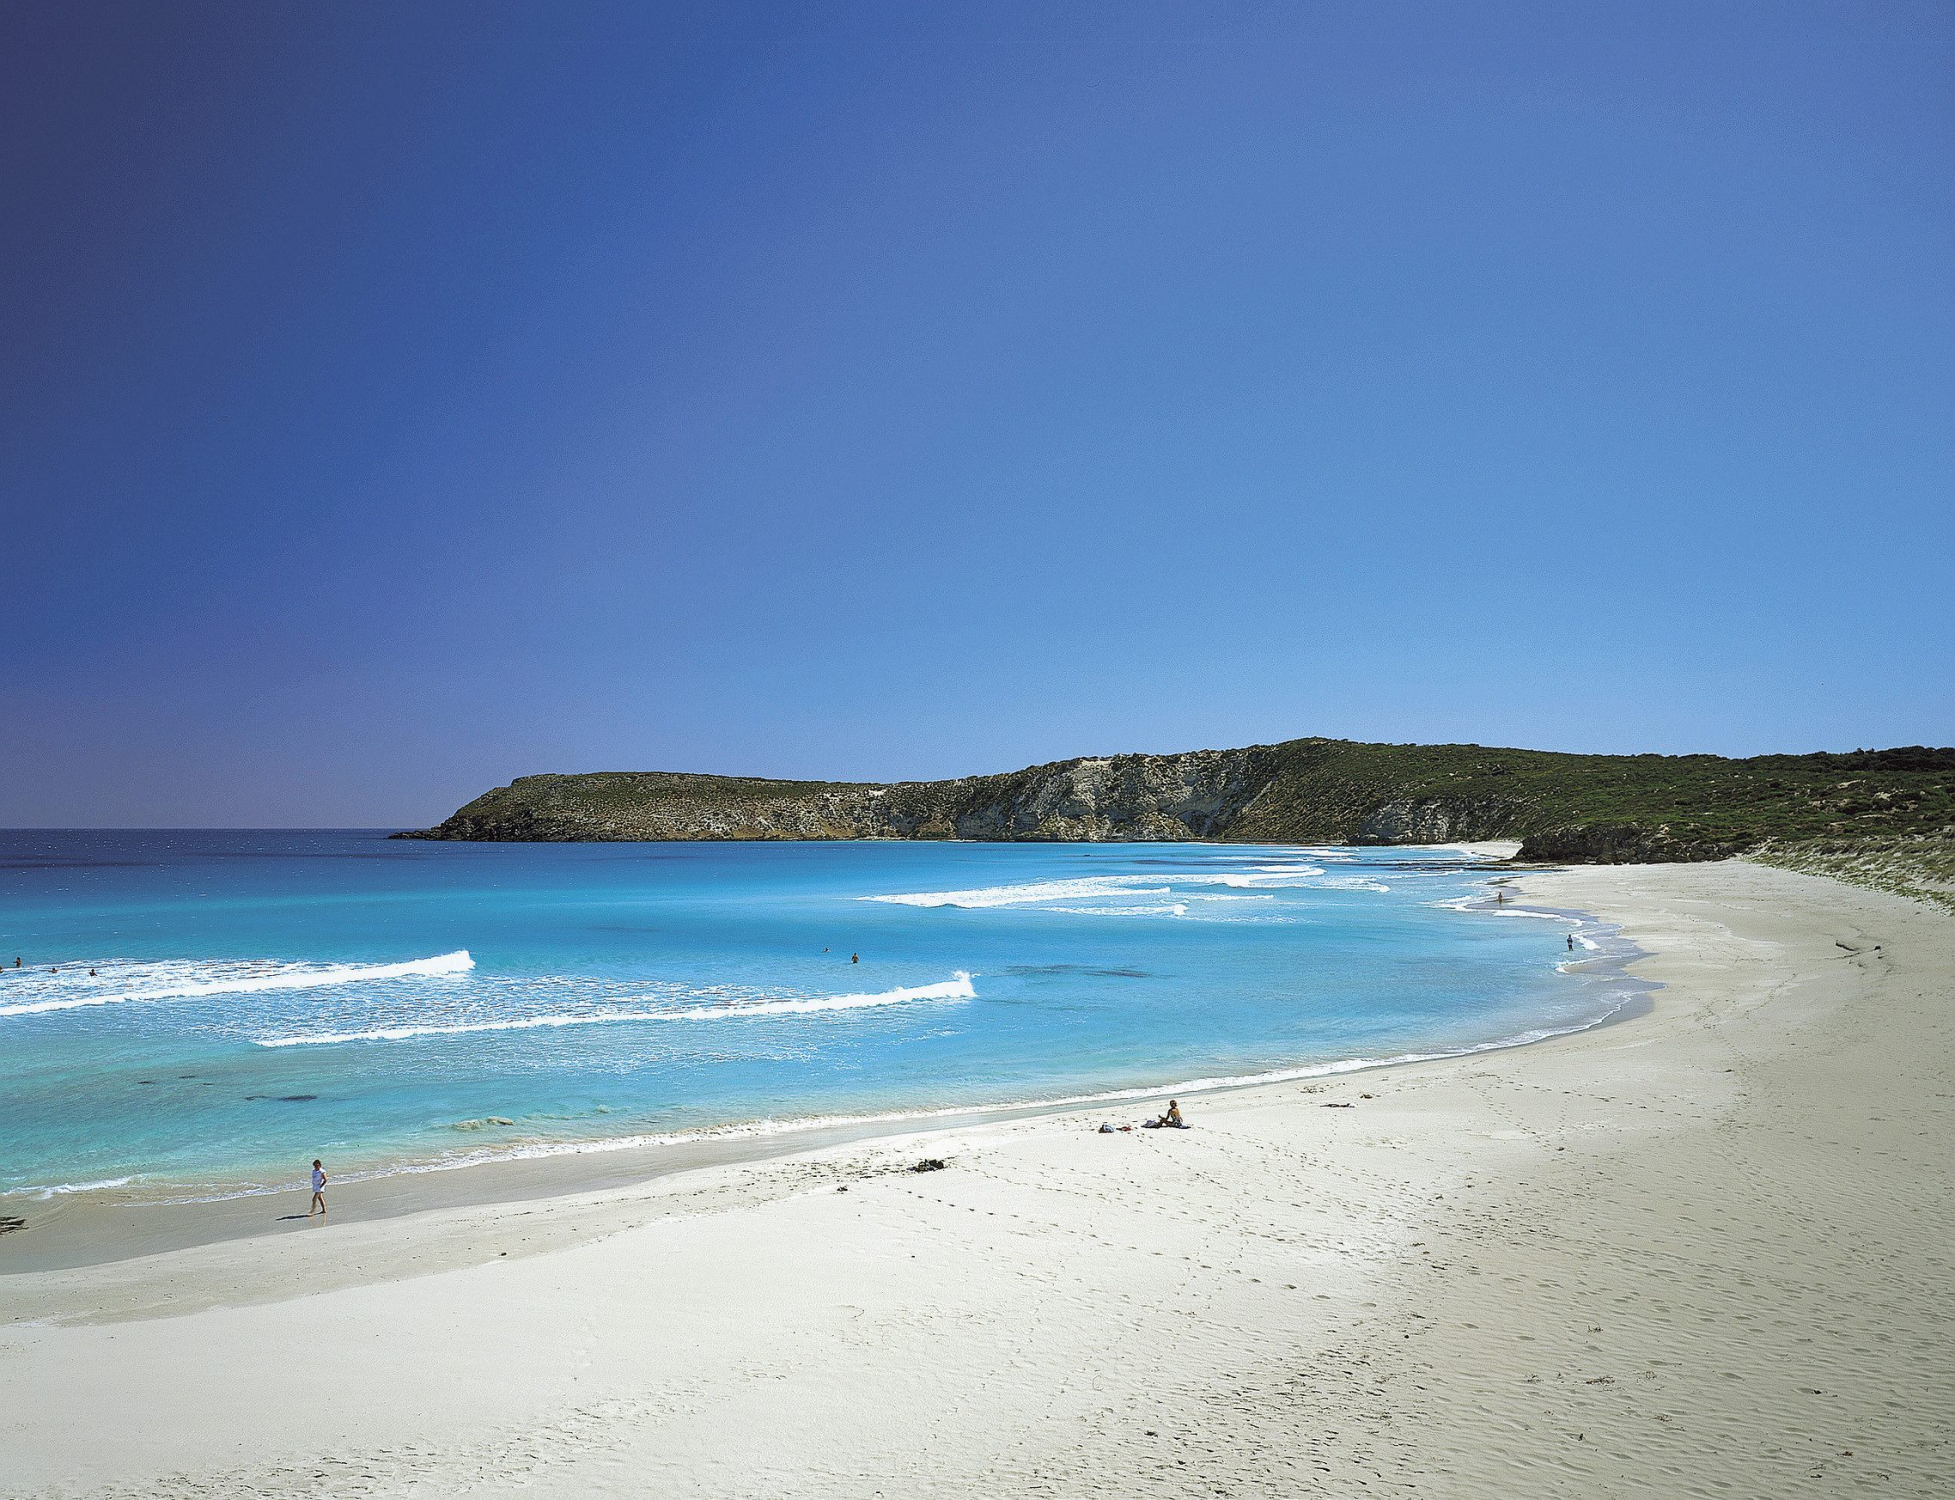 South Australia | Pennington Bay, Kangaroo Island, South Australia